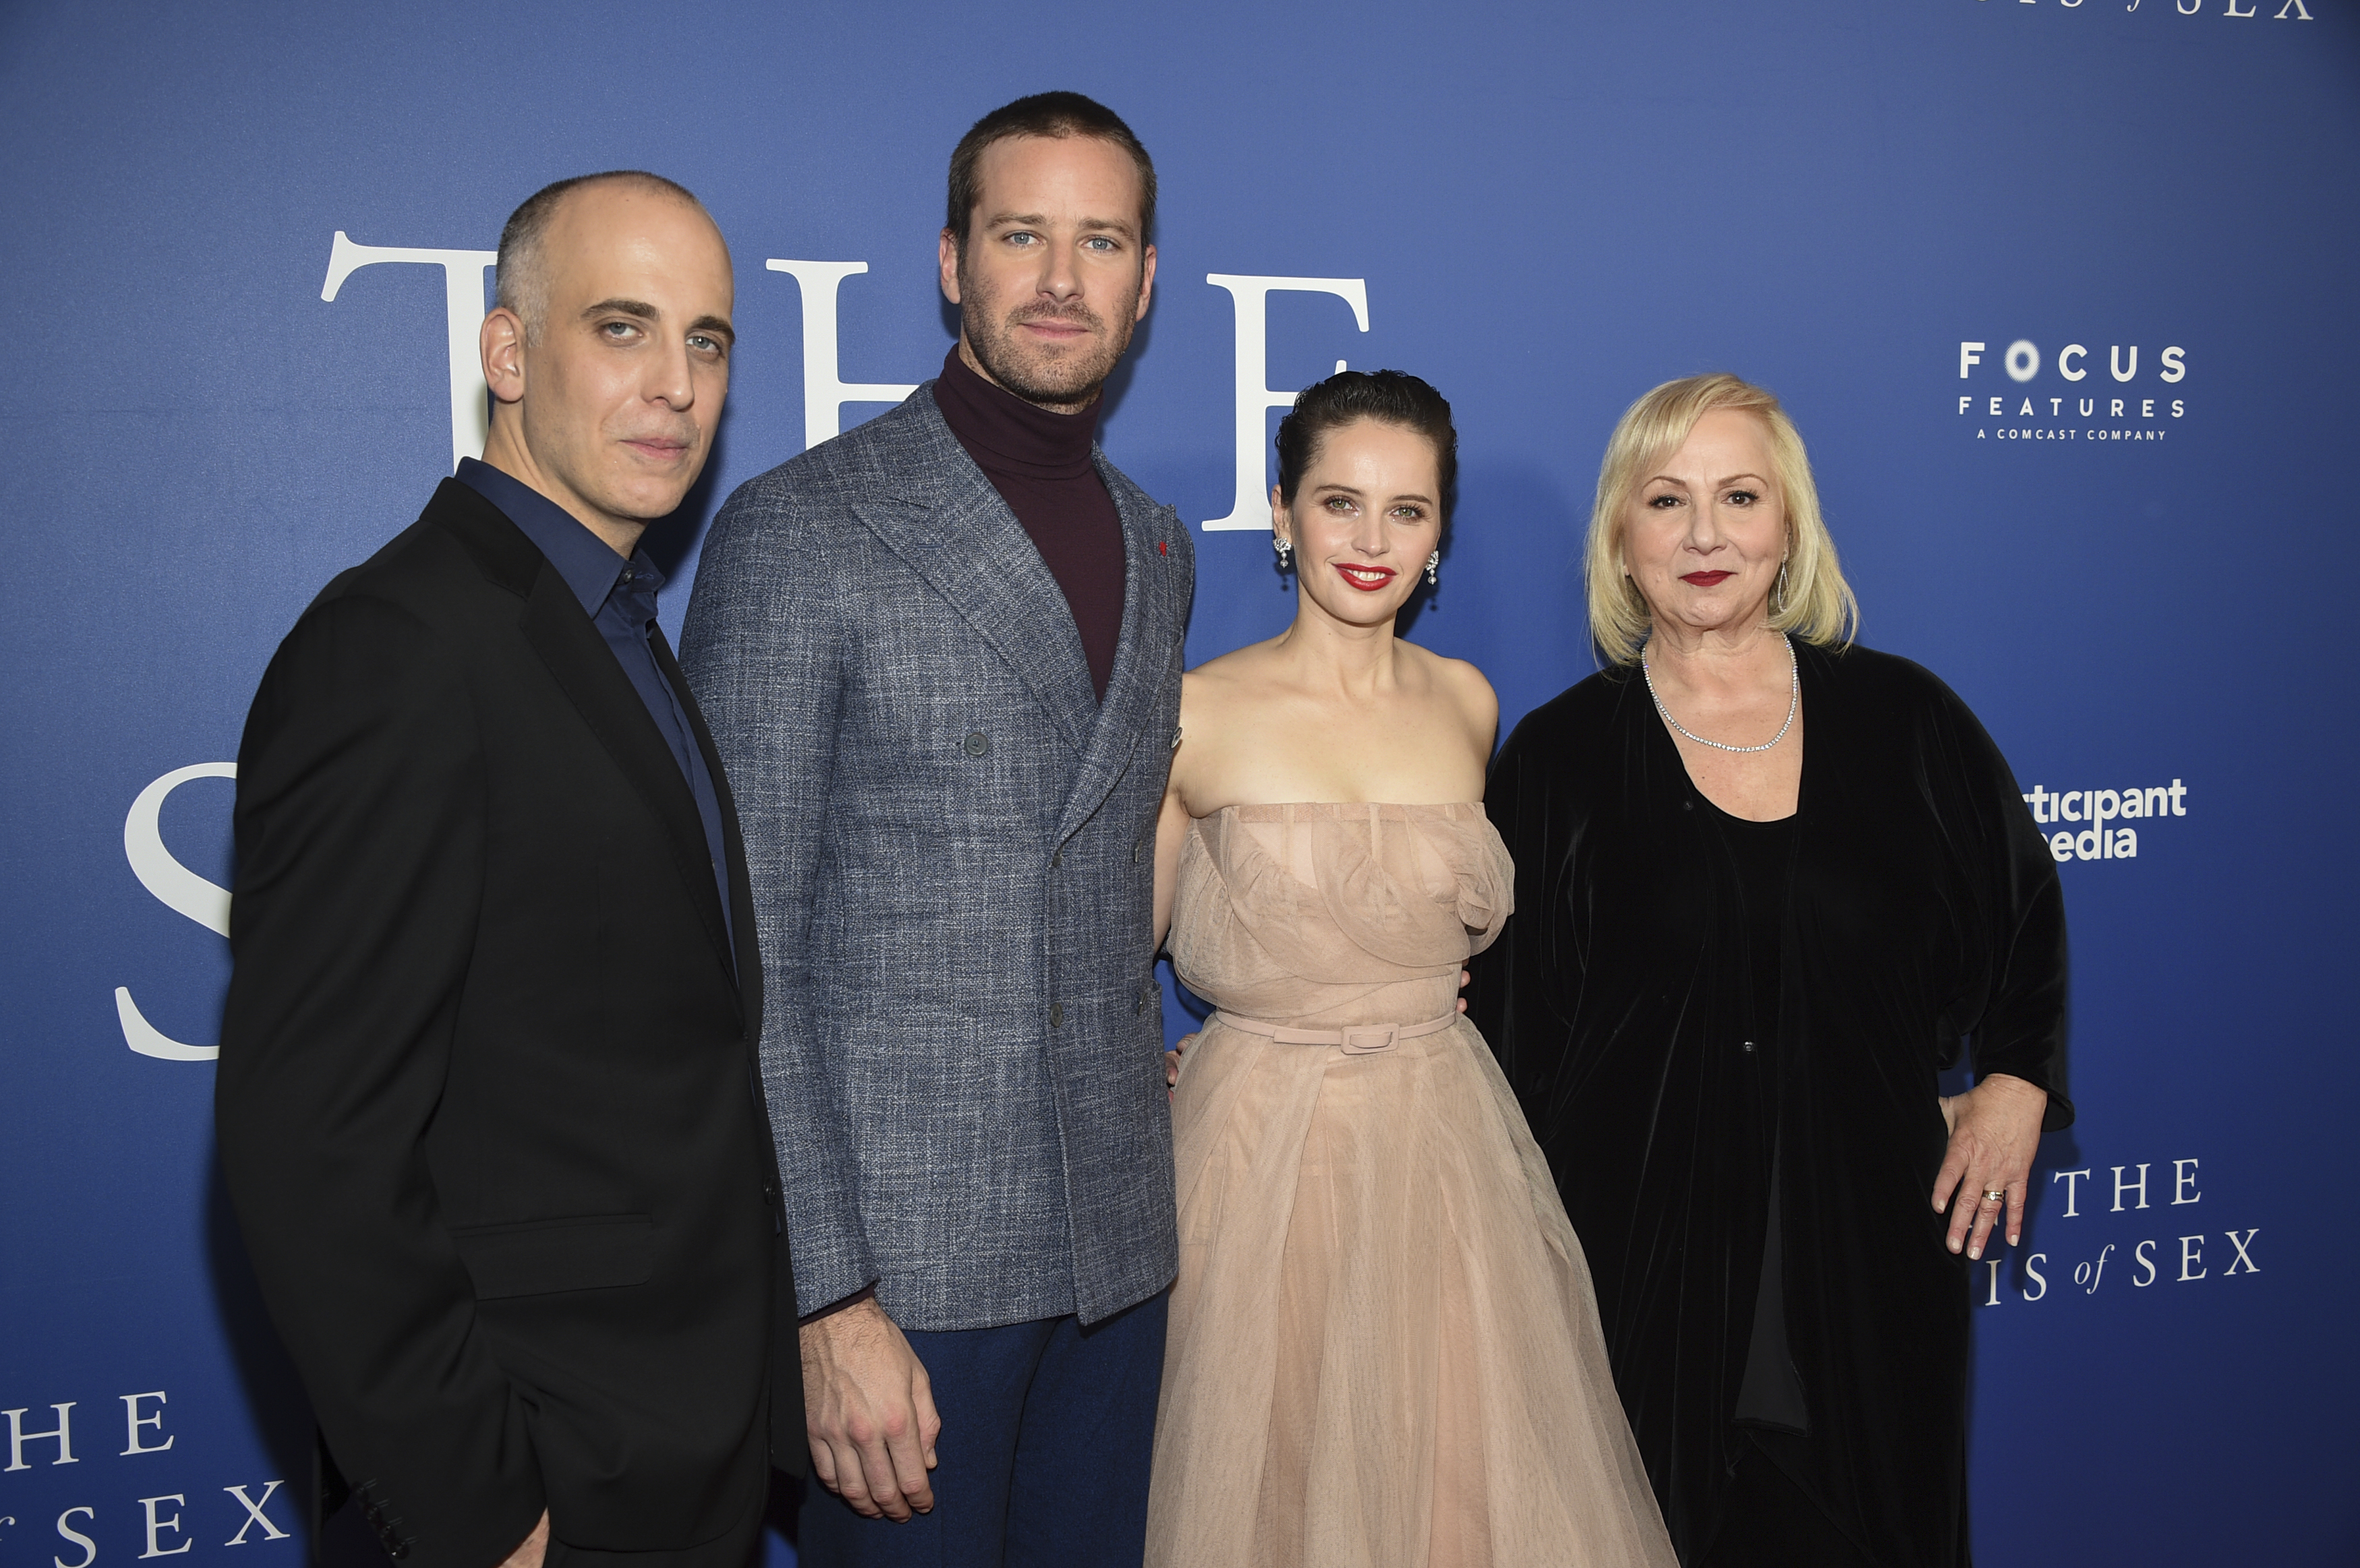 """Screenwriter Daniel Stiepleman, left, actor Armie Hammer, actress Felicity Jones and director Mimi Leder pose together at a special screening of """"On The Basis of Sex"""" at the Walter Reade Theater on Dec. 16, 2018, in New York."""